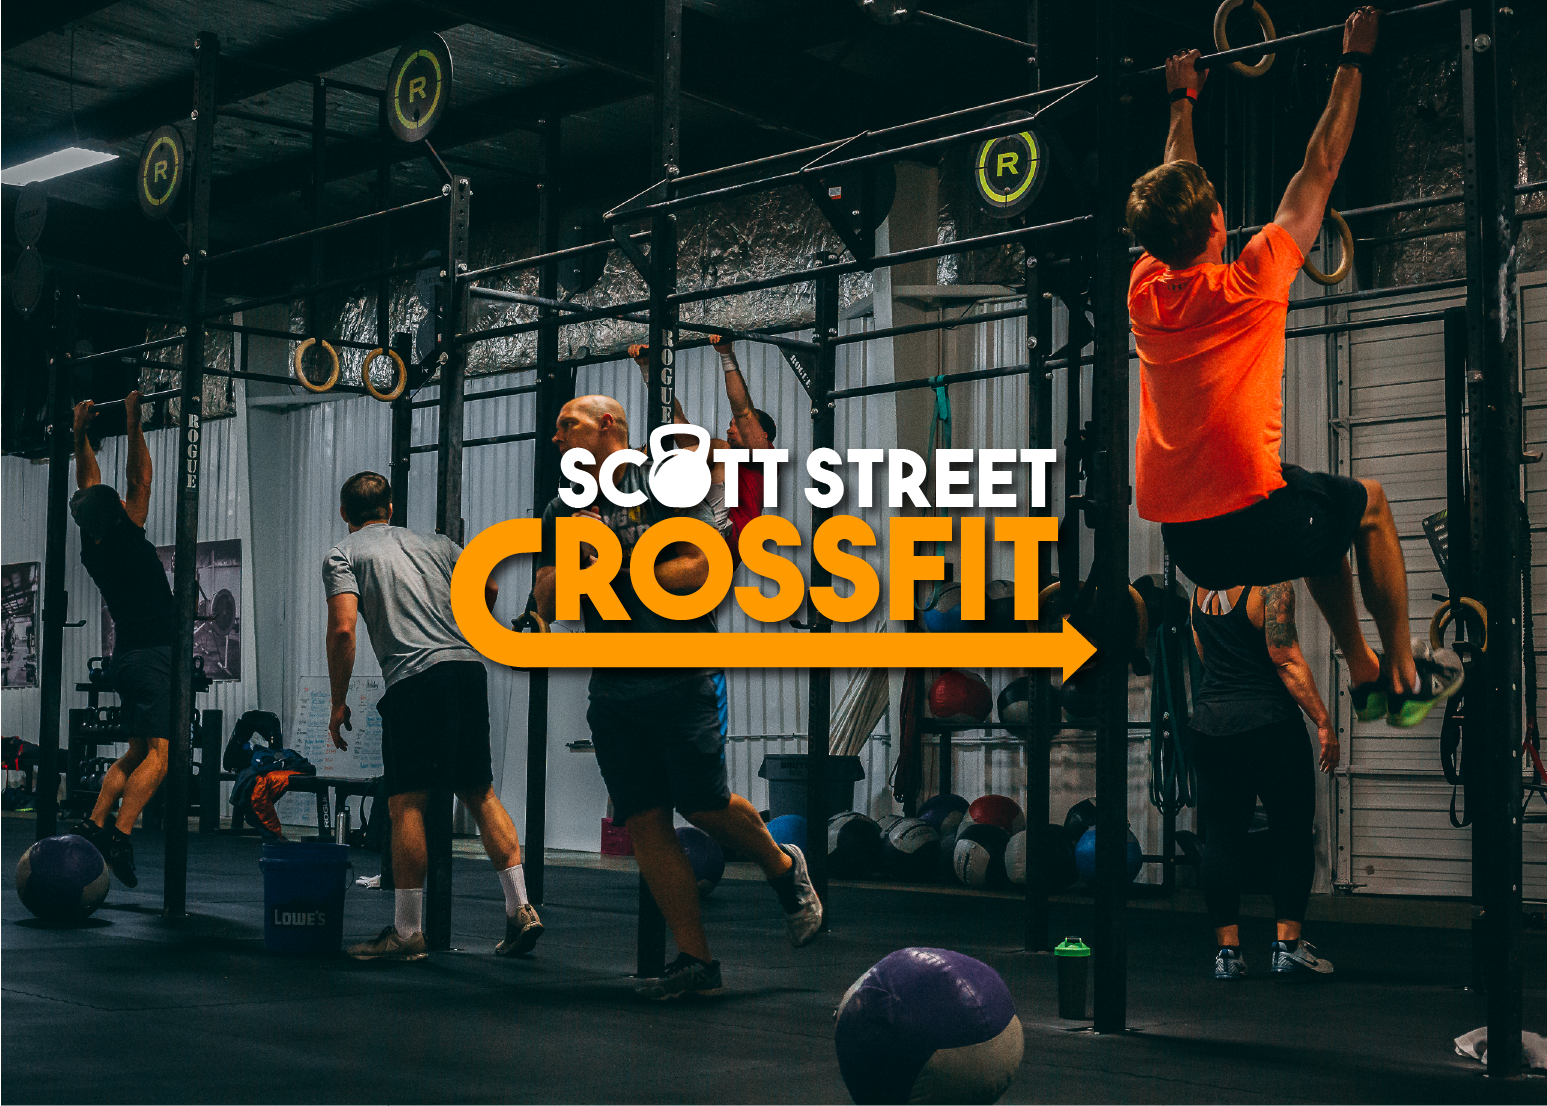 Scott Street Crossfit - Check out our 45 & 60 minute coach led CrossFit classes. Become a member or drop in!